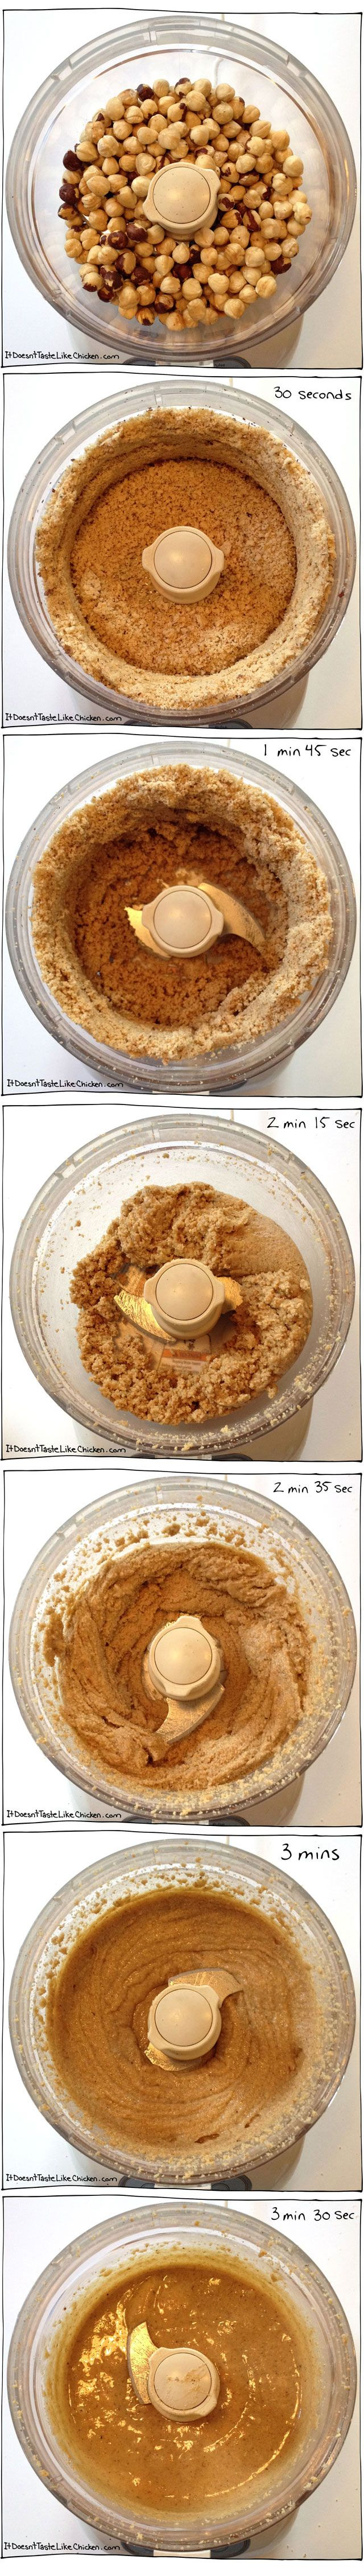 Homemade Hazelnut Butter! Just hazelnuts and a food processor to get this delicious treat!